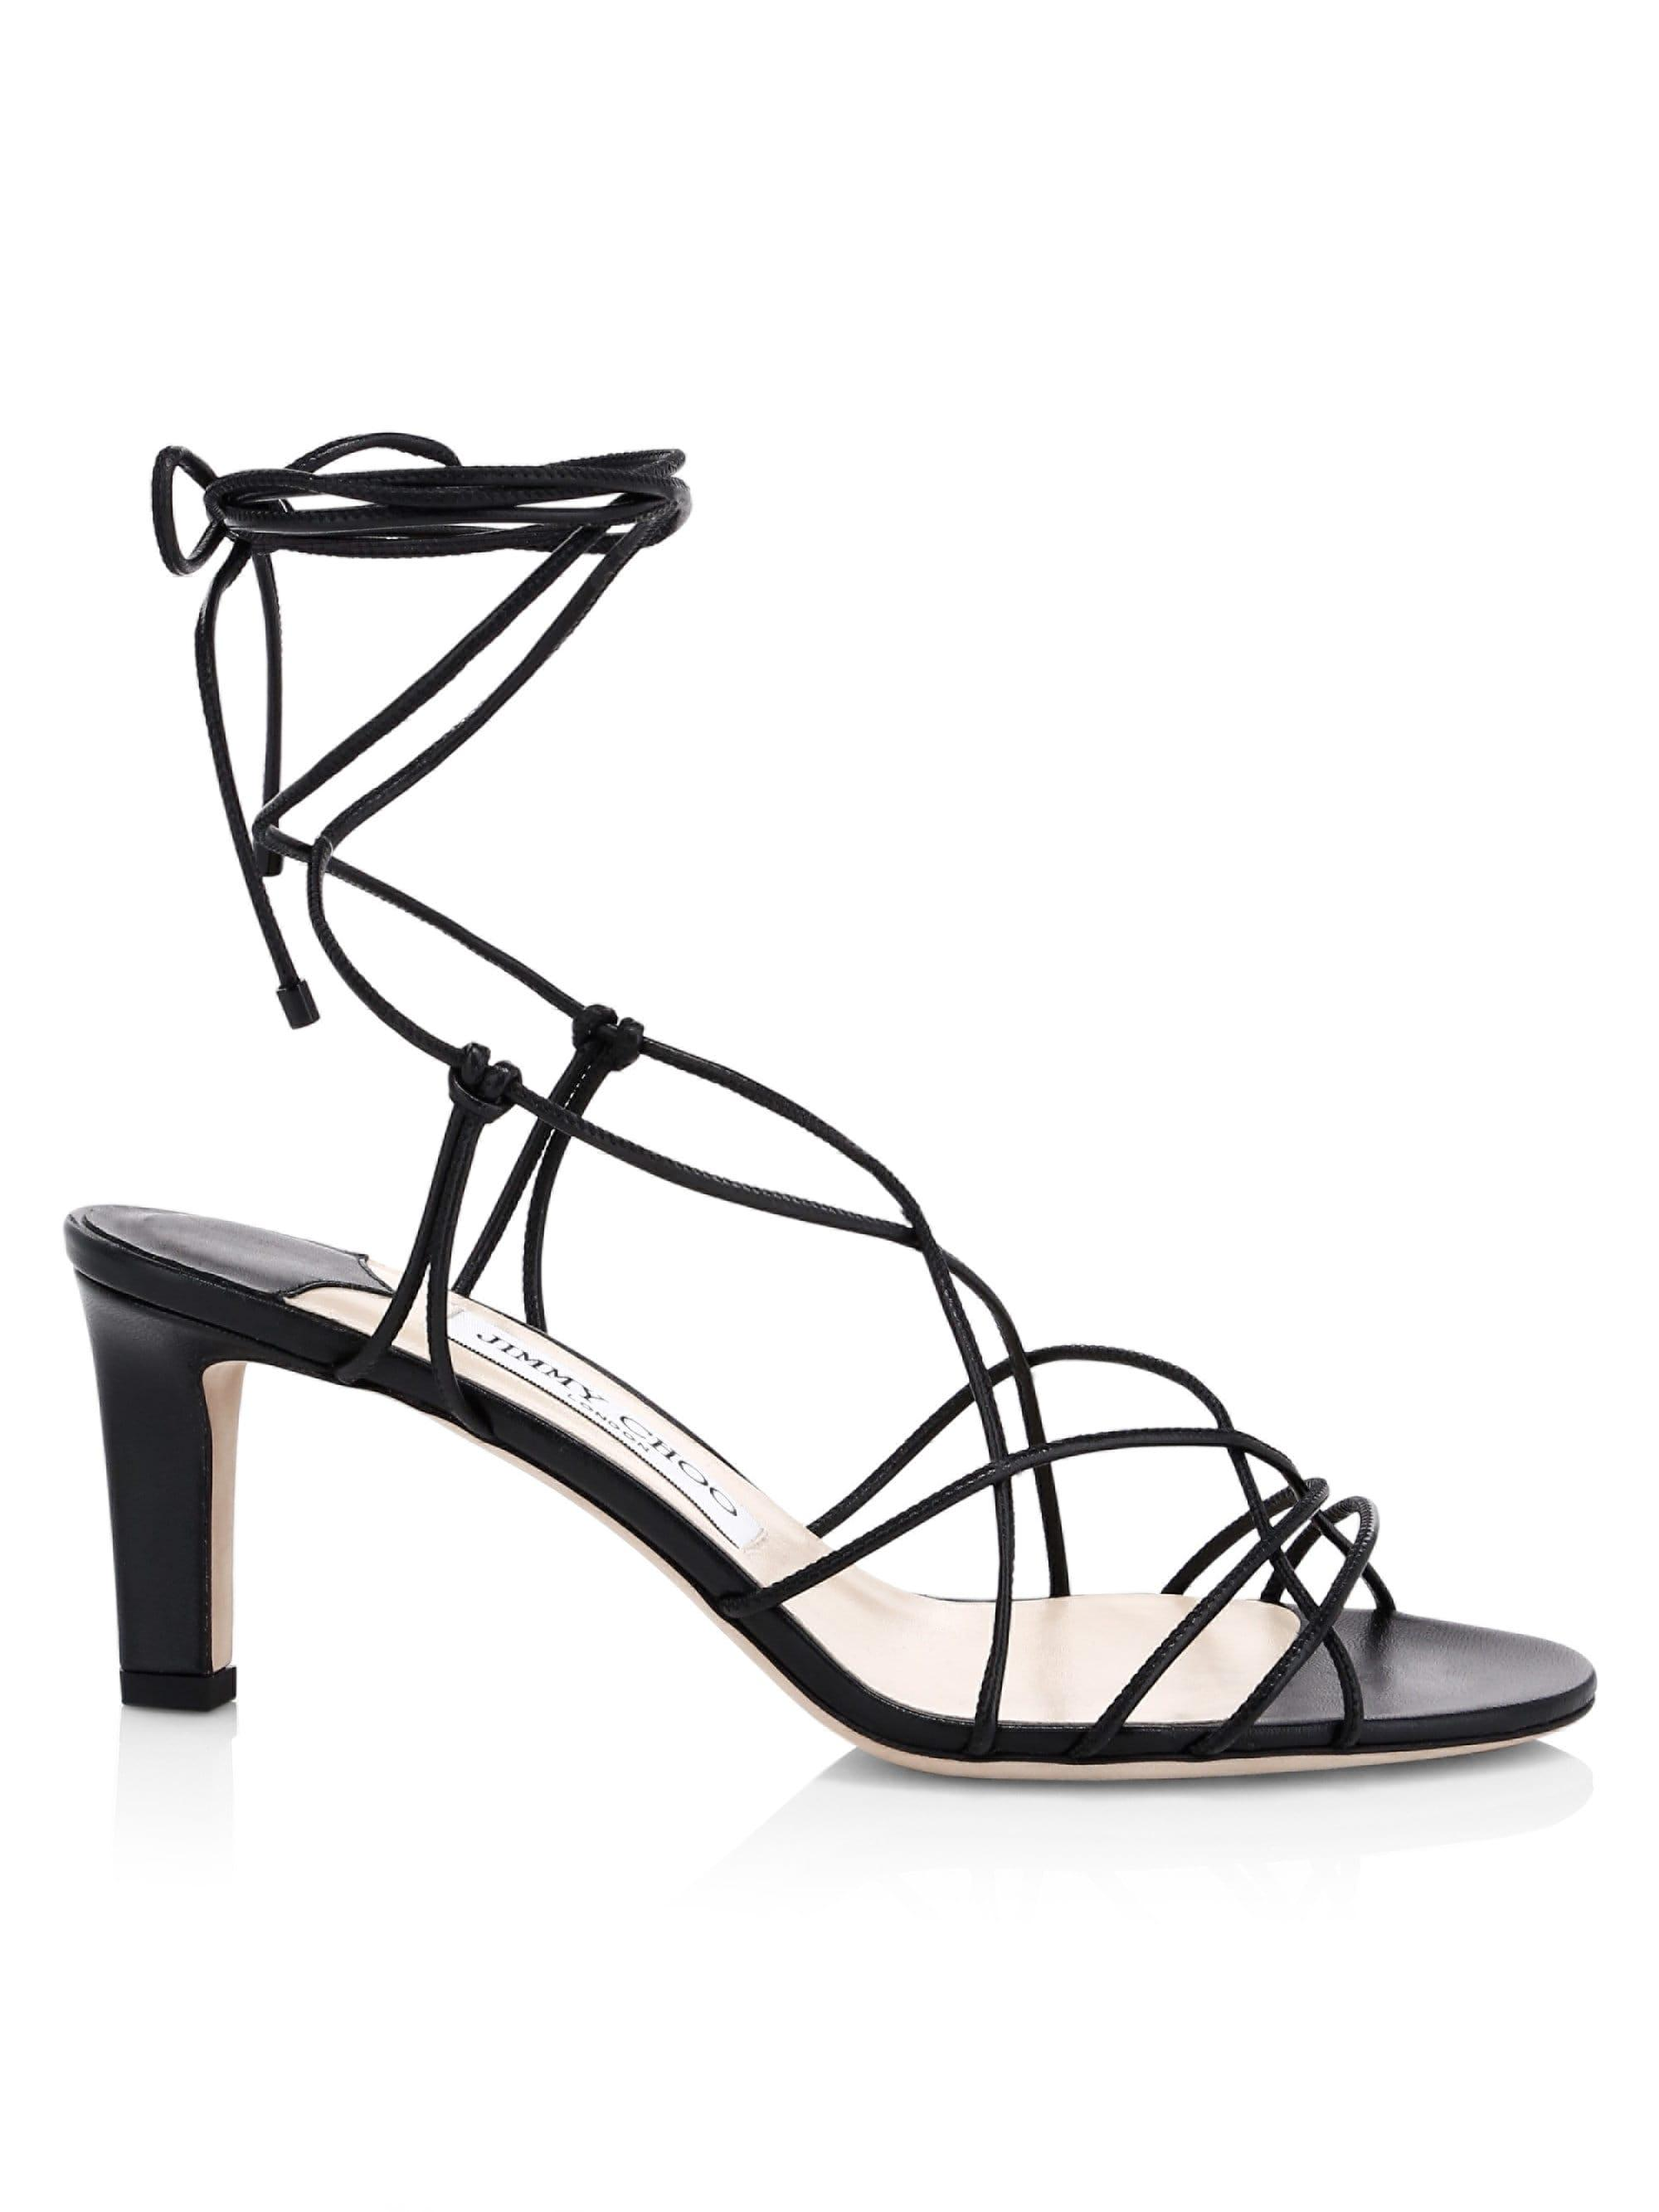 a8fc97fee8 Lyst - Jimmy Choo Tao Lace-up Leather Sandals in Black